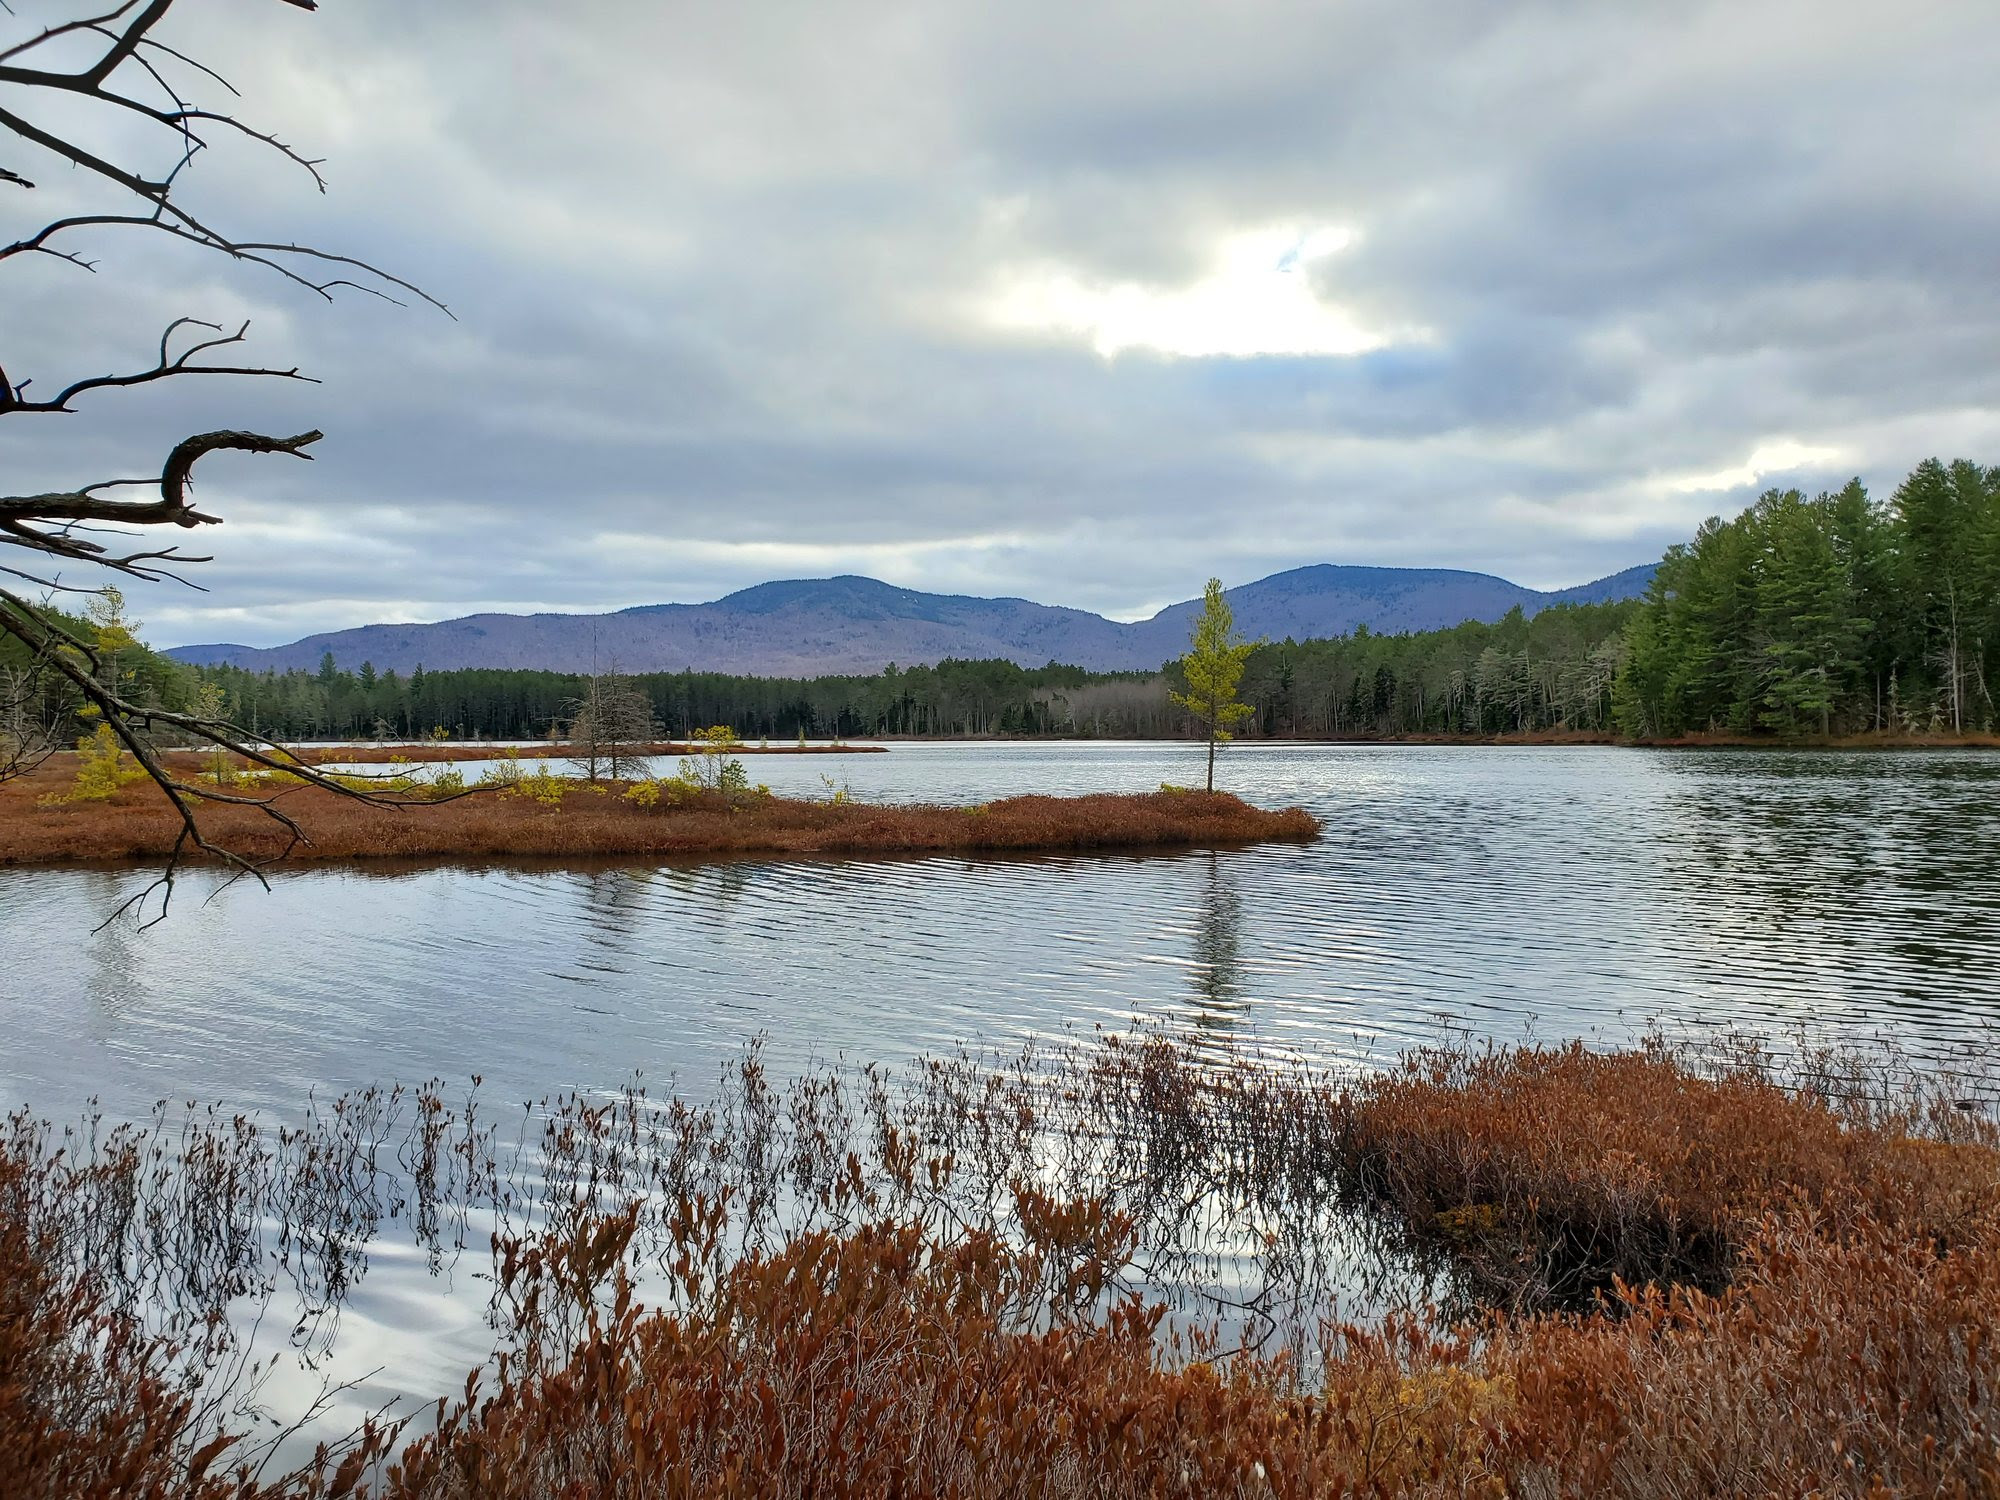 Adirondack pond with mountains in background